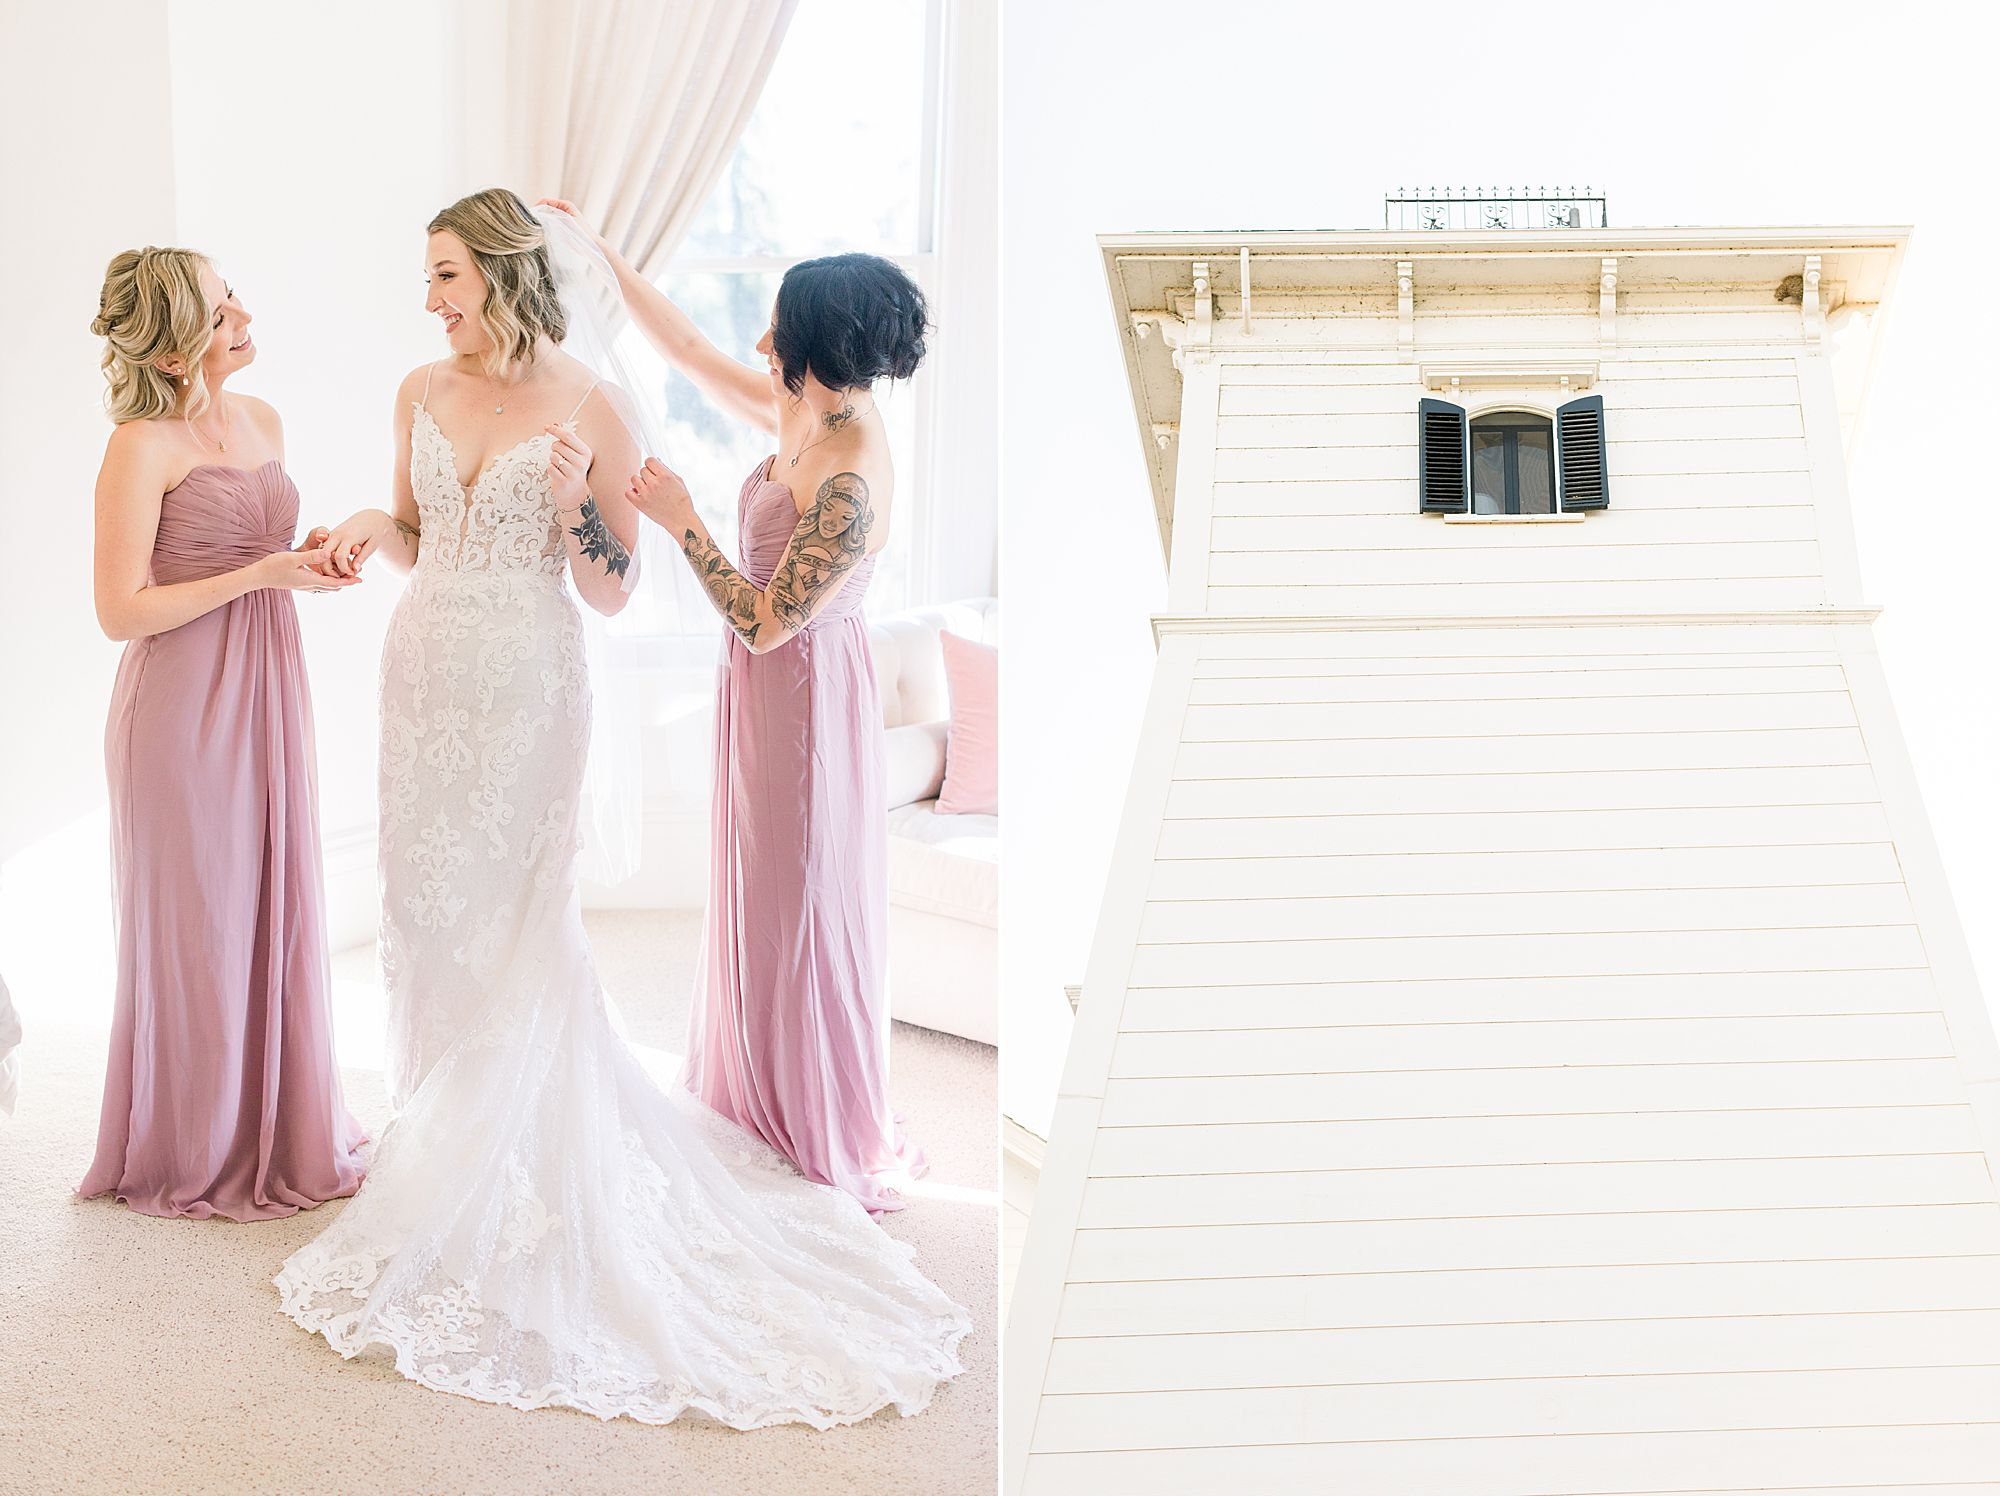 Inn at Park Winters Wedding - Lindsay and Shane - Ashley Baumgartner - Park Winters Wedding Photographer - Sacramento Wedding Photographer_0013.jpg